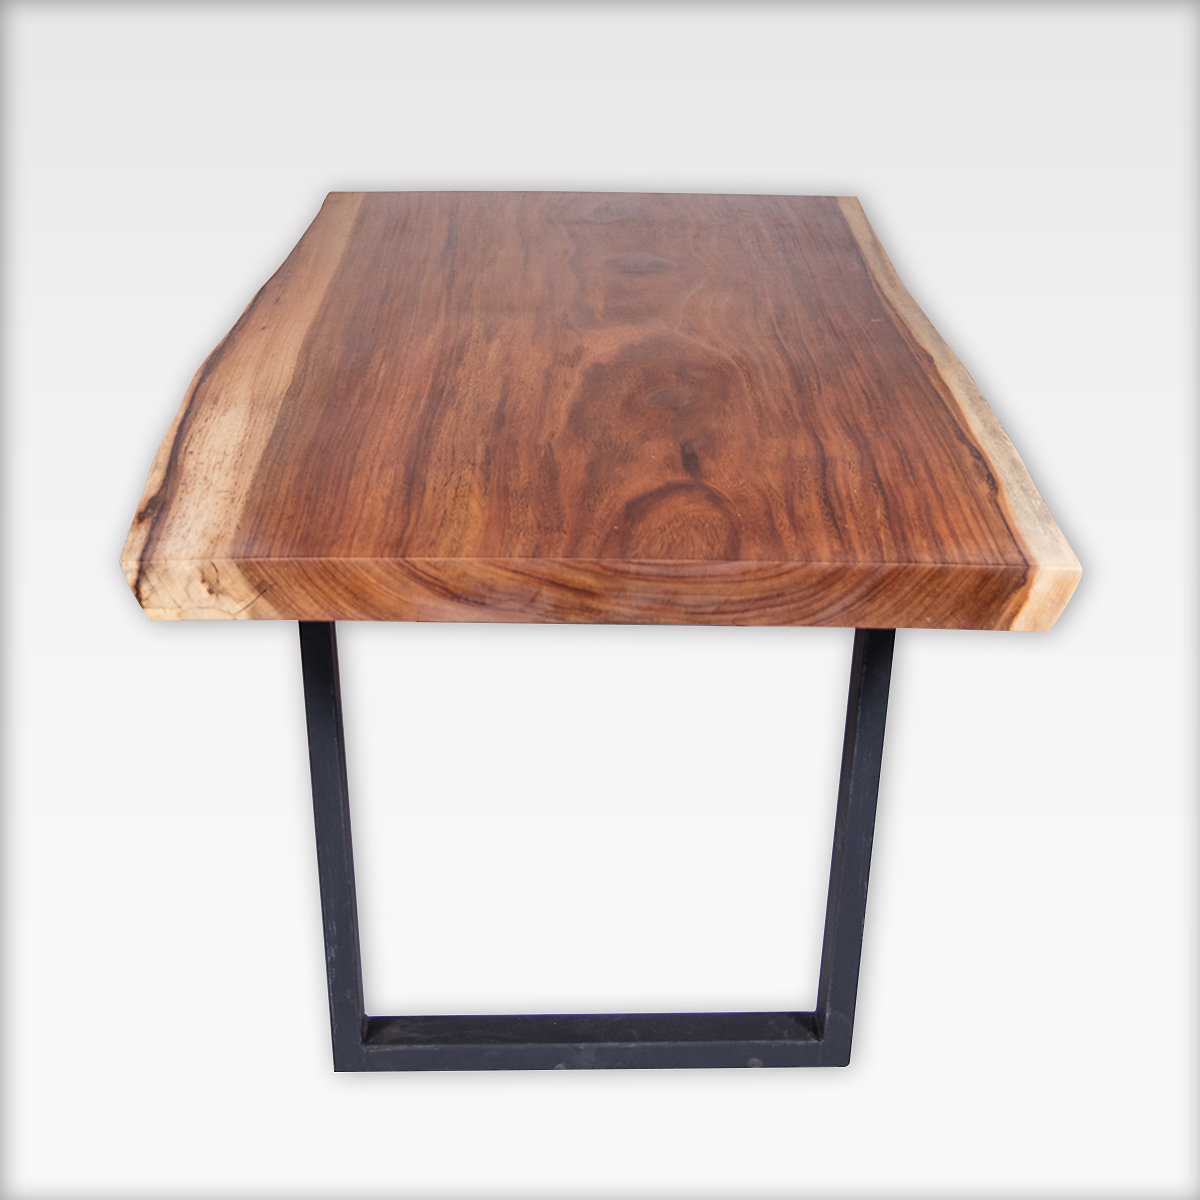 This Stunning Live Edge Table Features Black Metal Base Legs That Add A  Modern Touch To A Rustic Piece. This Table Is Guaranteed To Elicit An  Instant U201cwowu201d ...